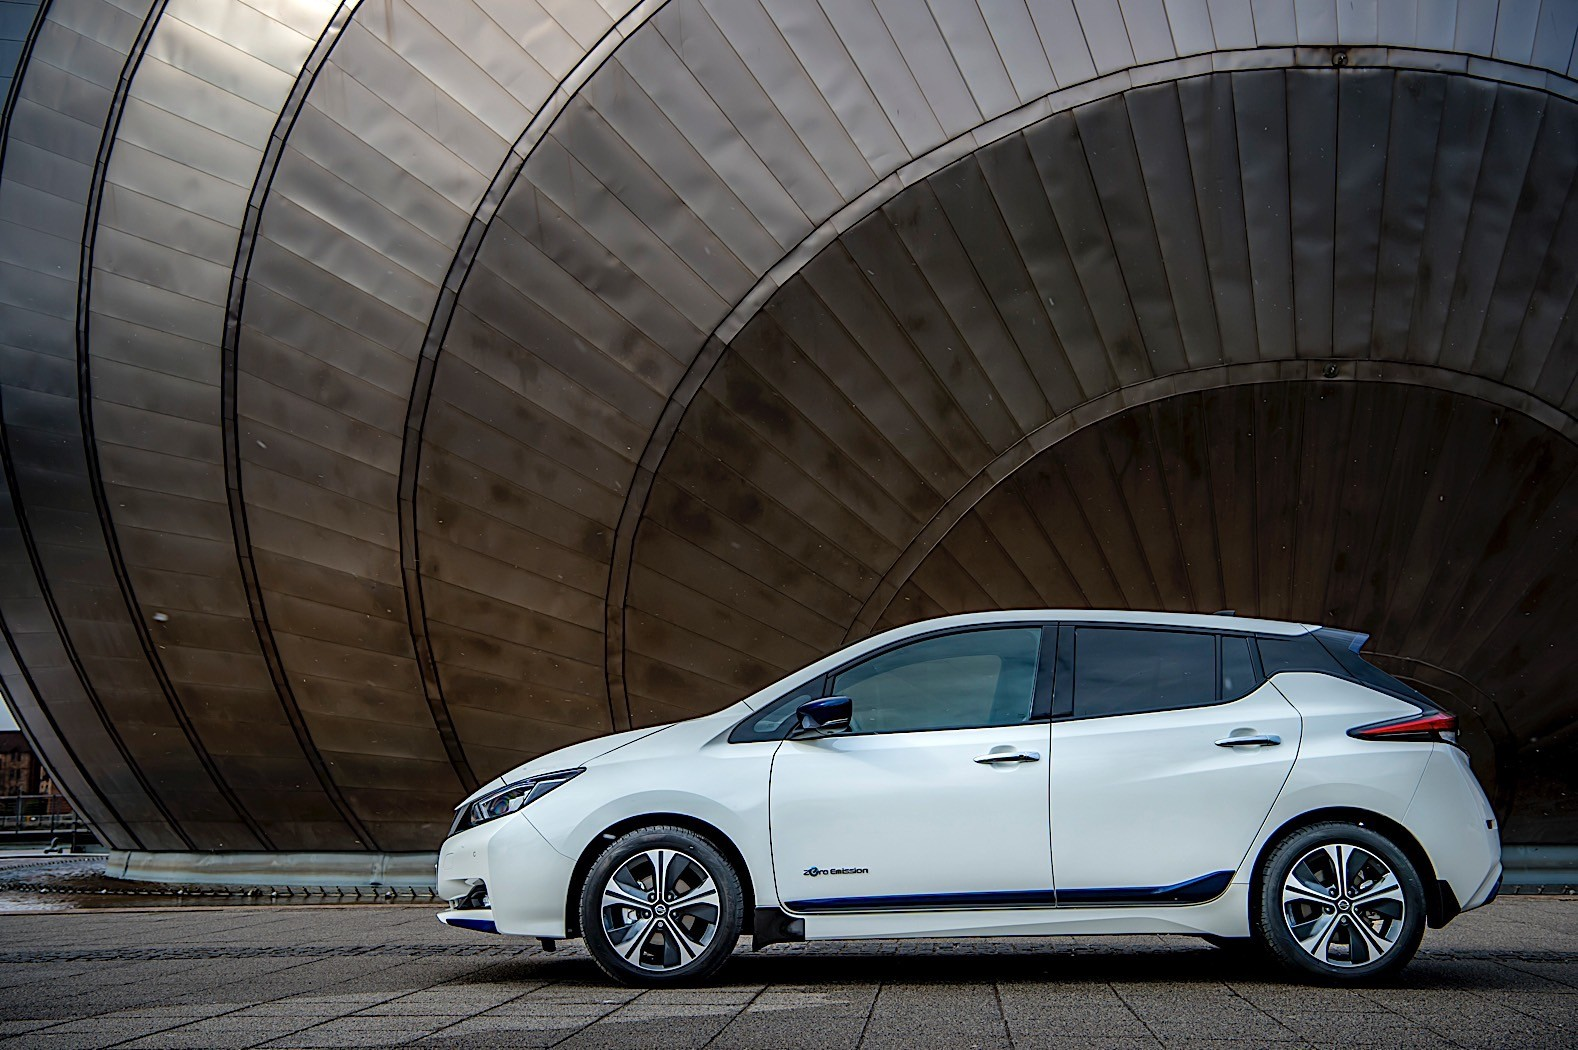 japanese city lights to be powered by nissan leaf batteries